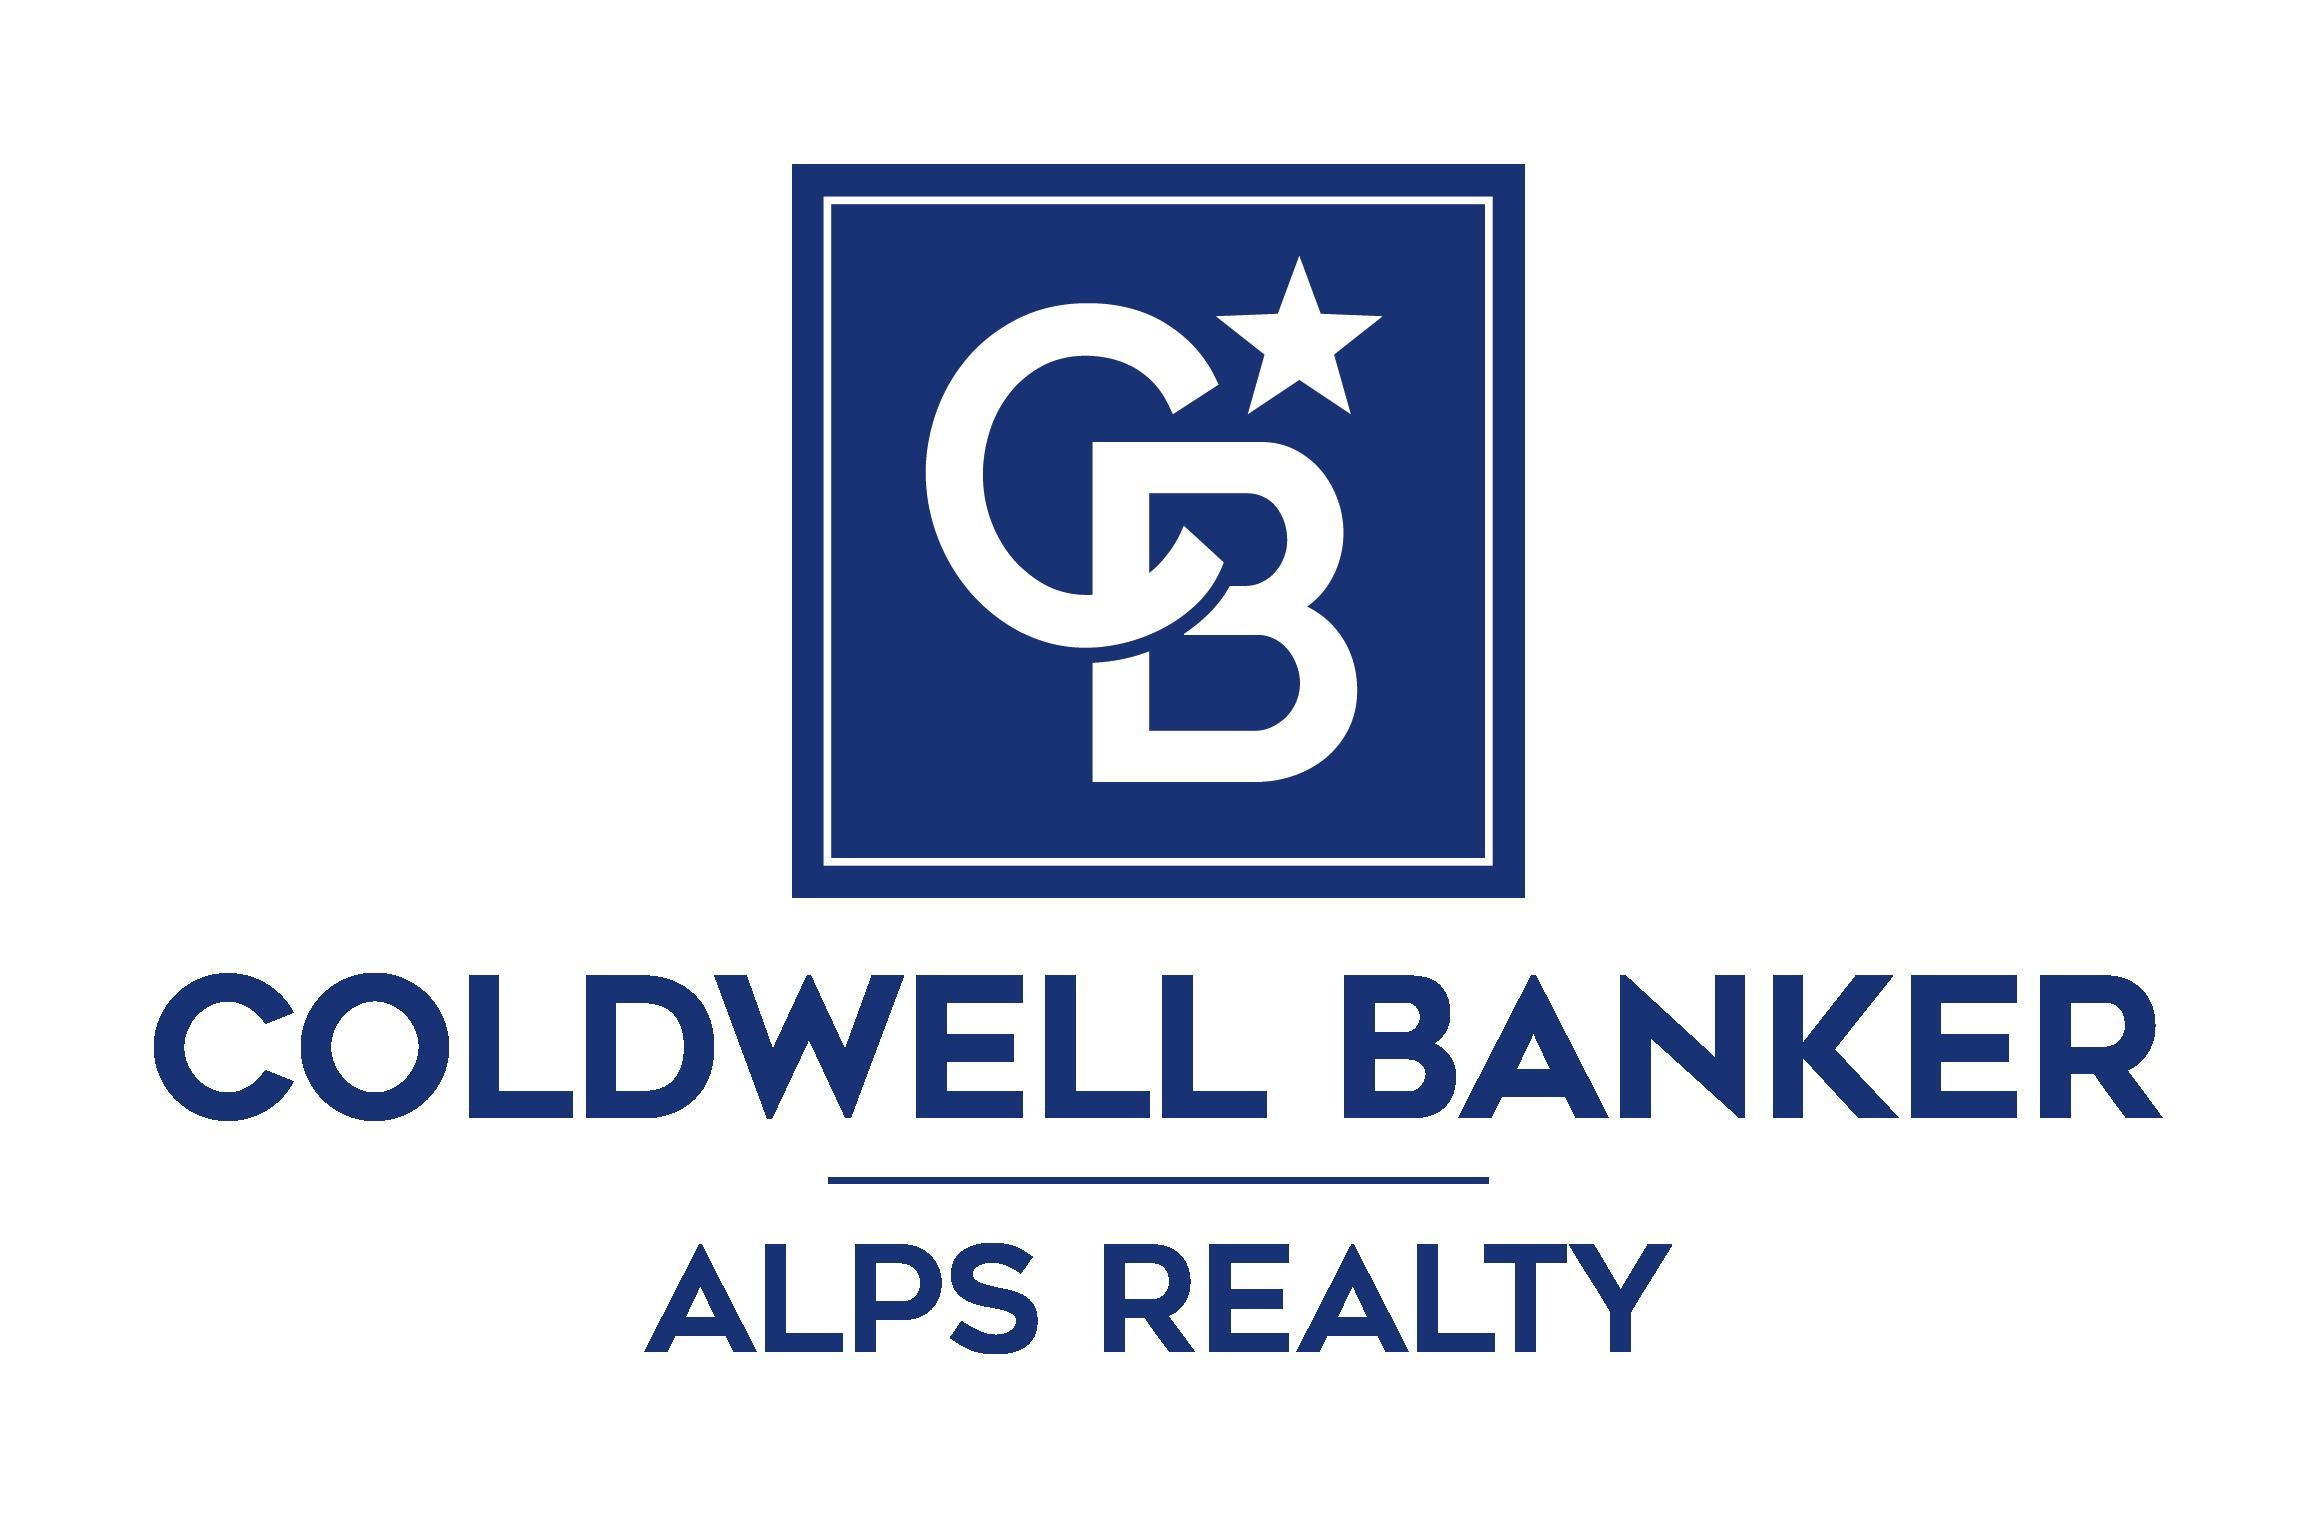 Coldwell Banker Alps Realty agence immobilière Megève (74120)